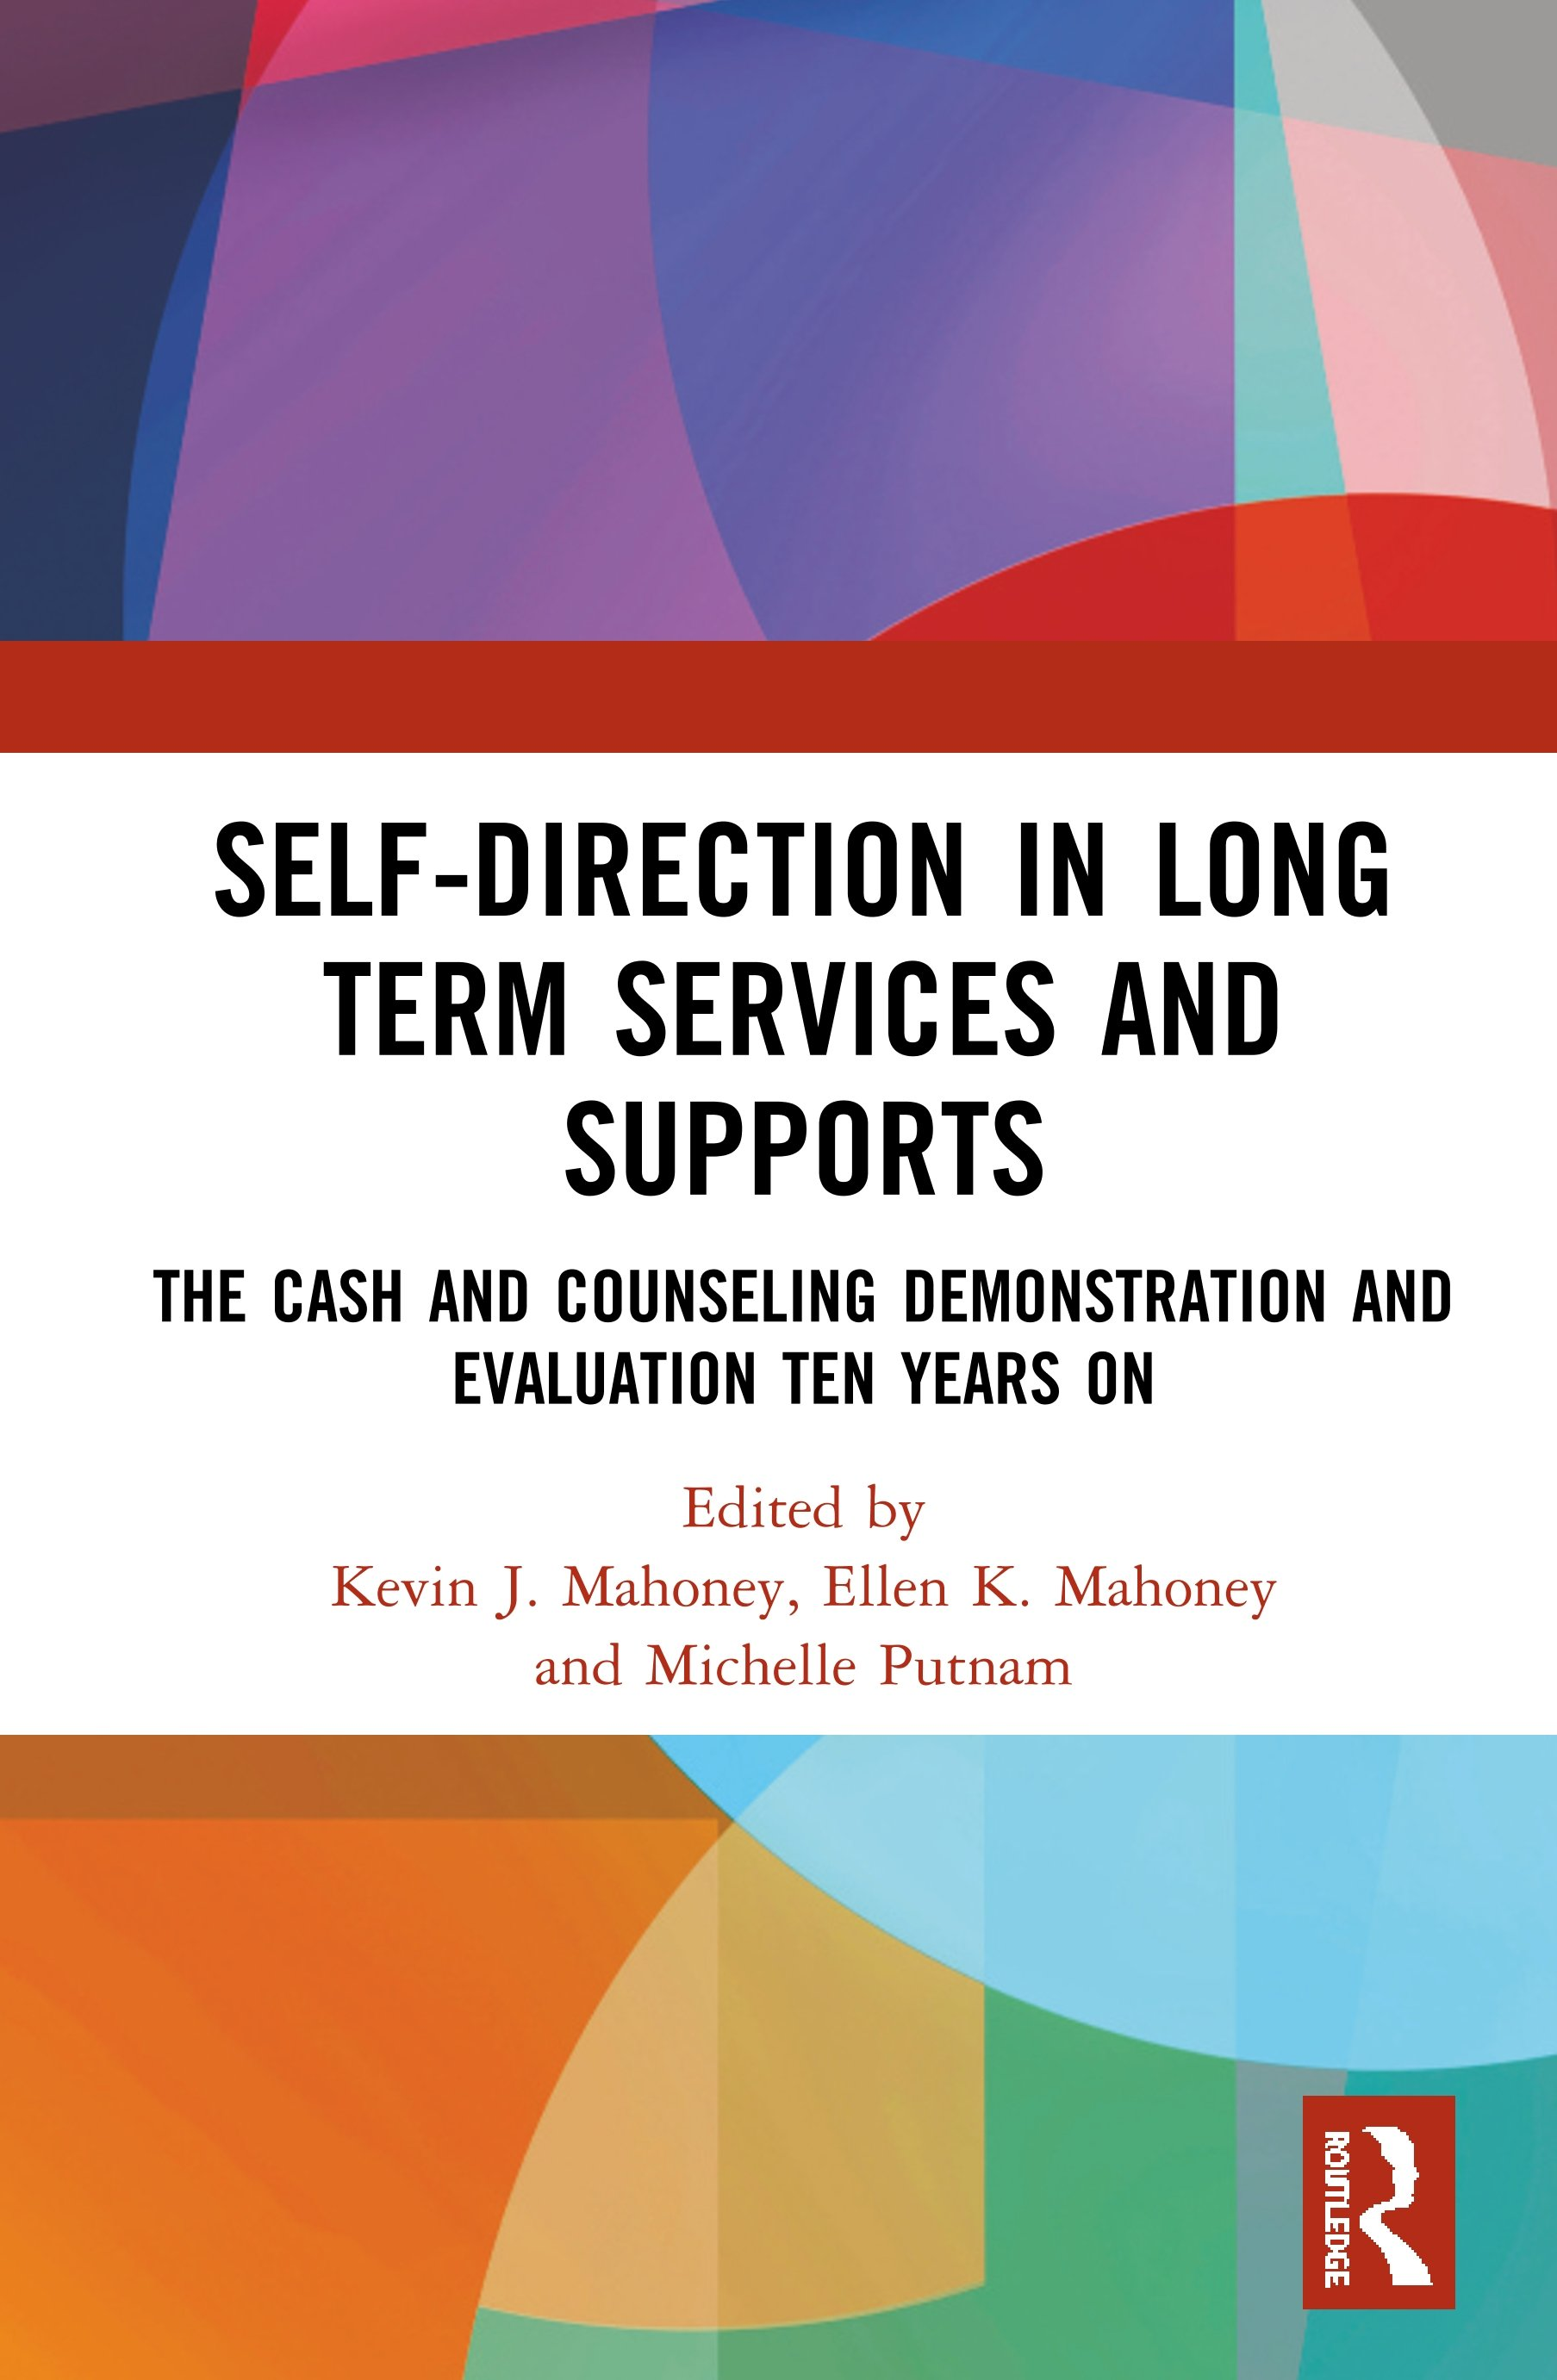 Self-Direction in Long Term Services and Supports: The Cash and Counseling Demonstration and Evaluation Ten Years On book cover